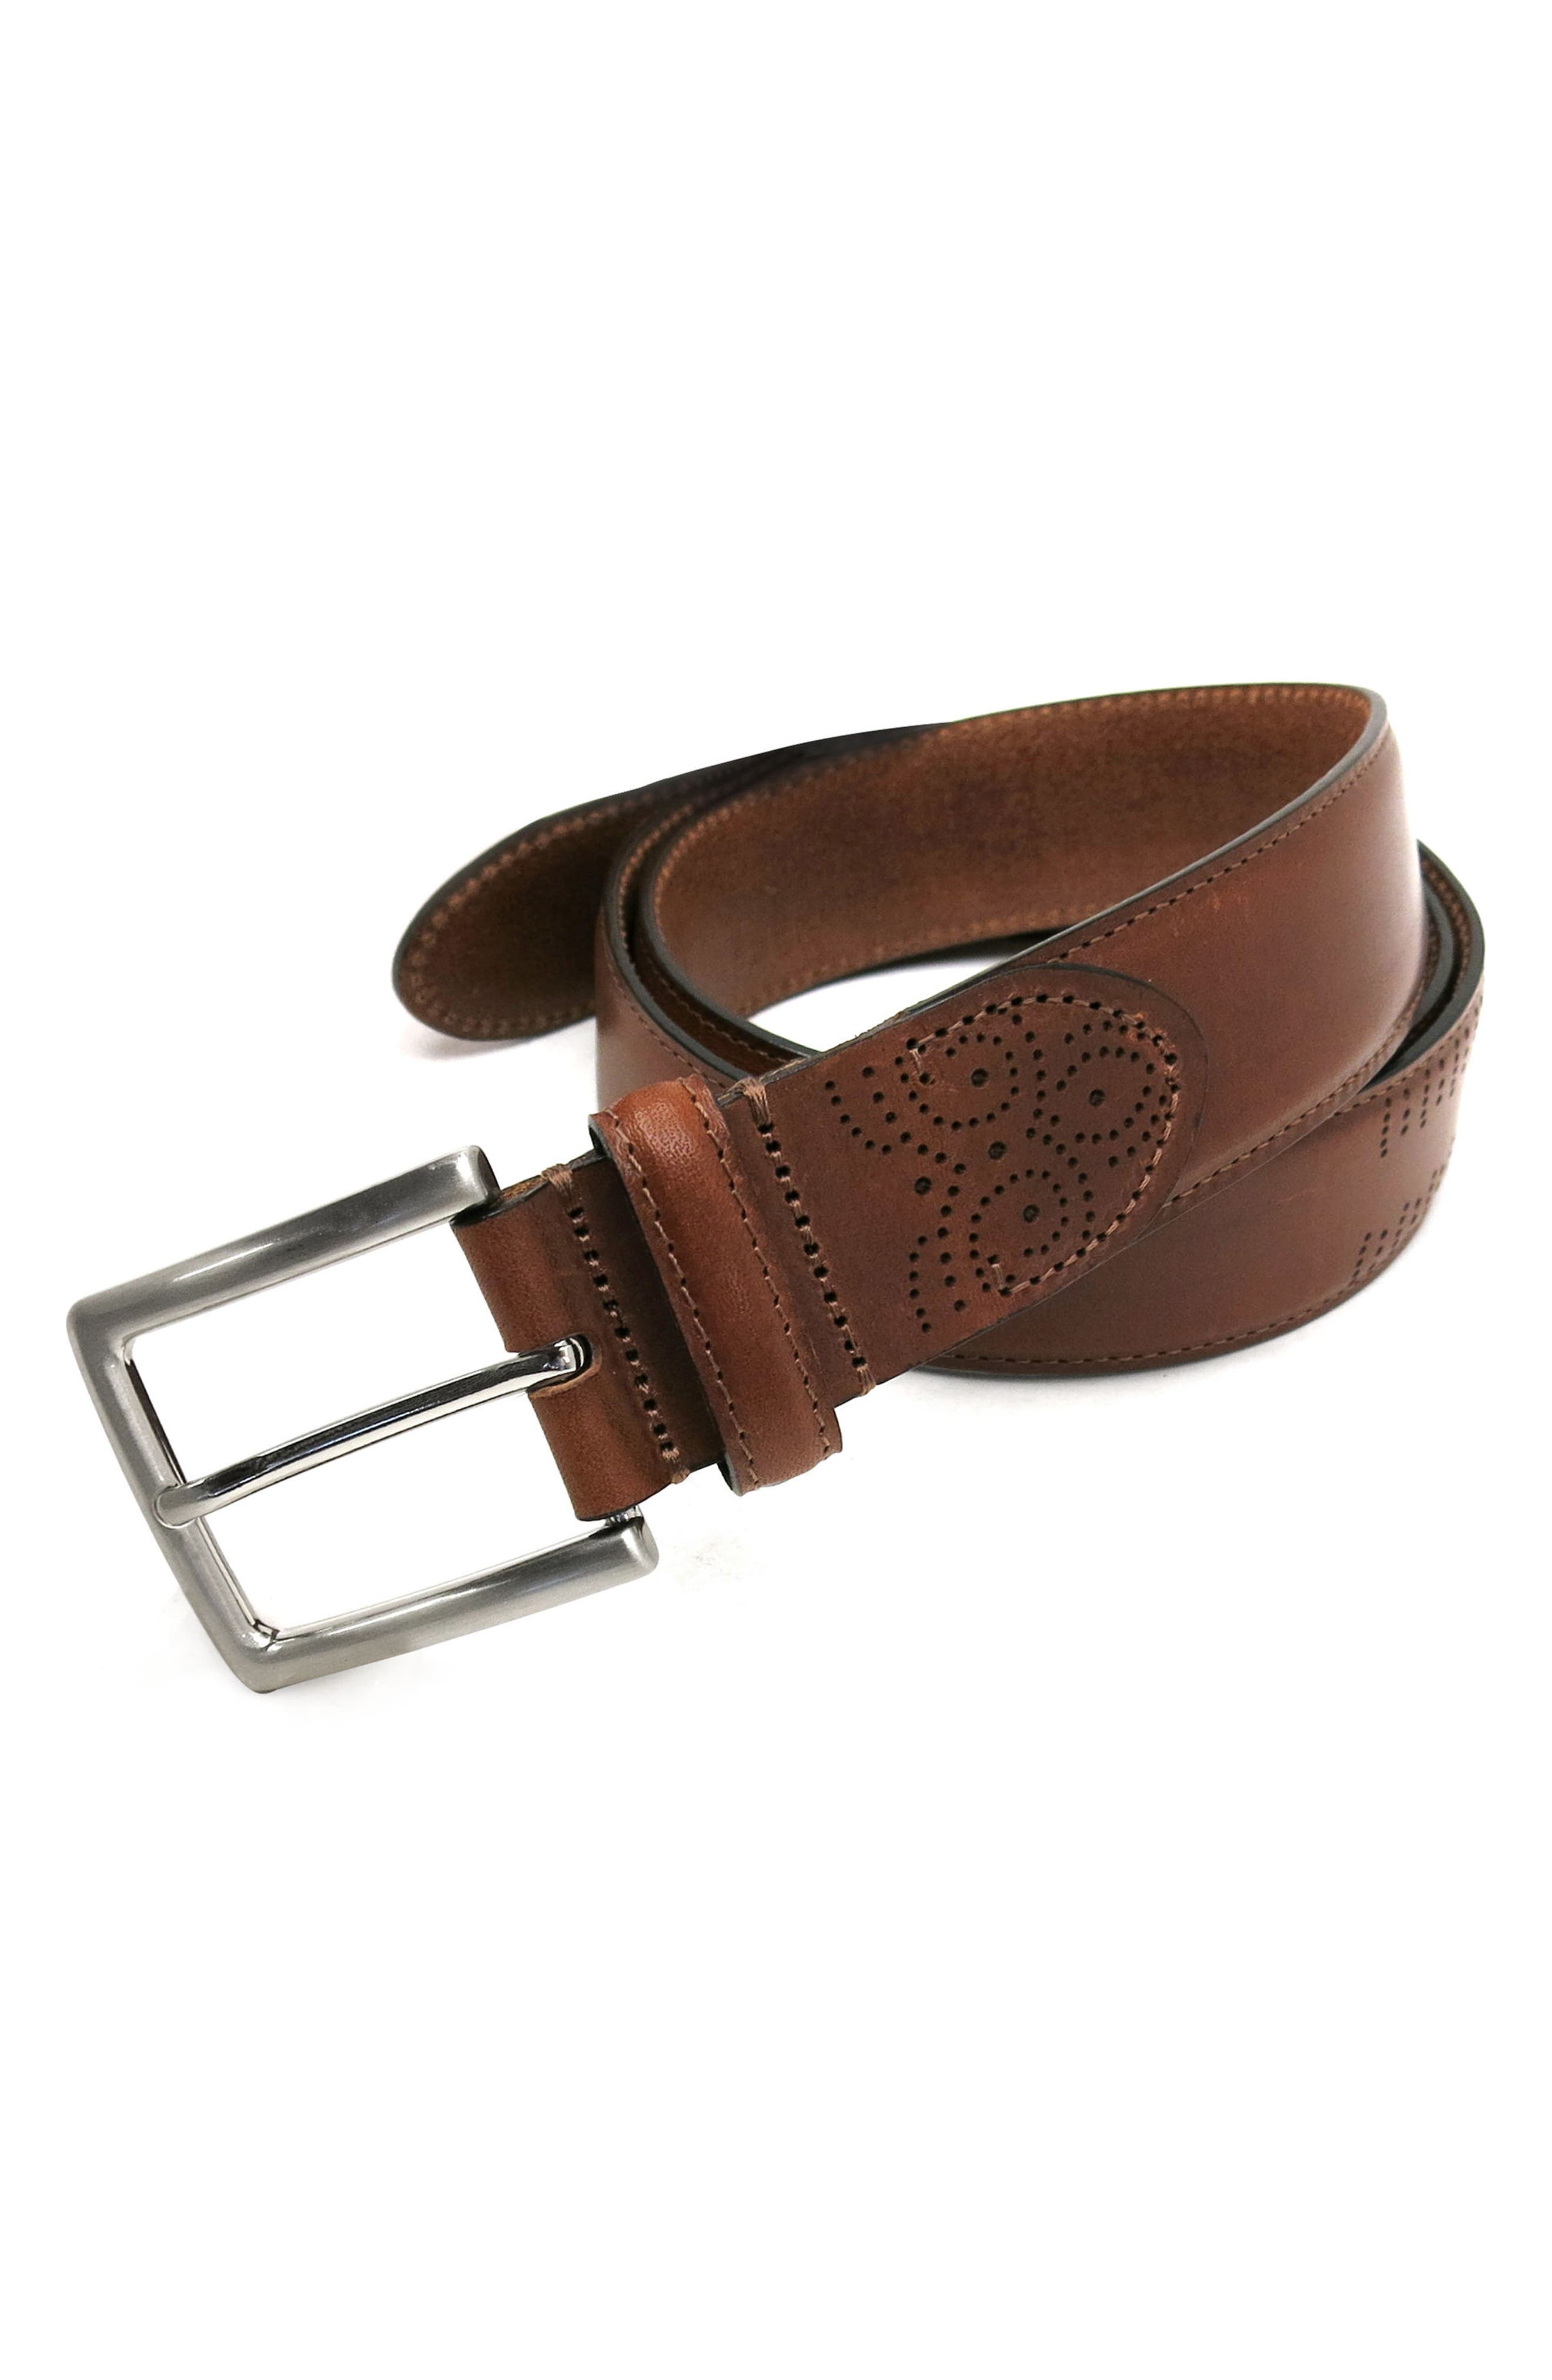 Perforated Tab Leather Belt,                             Alternate thumbnail 2, color,                             COGNAC